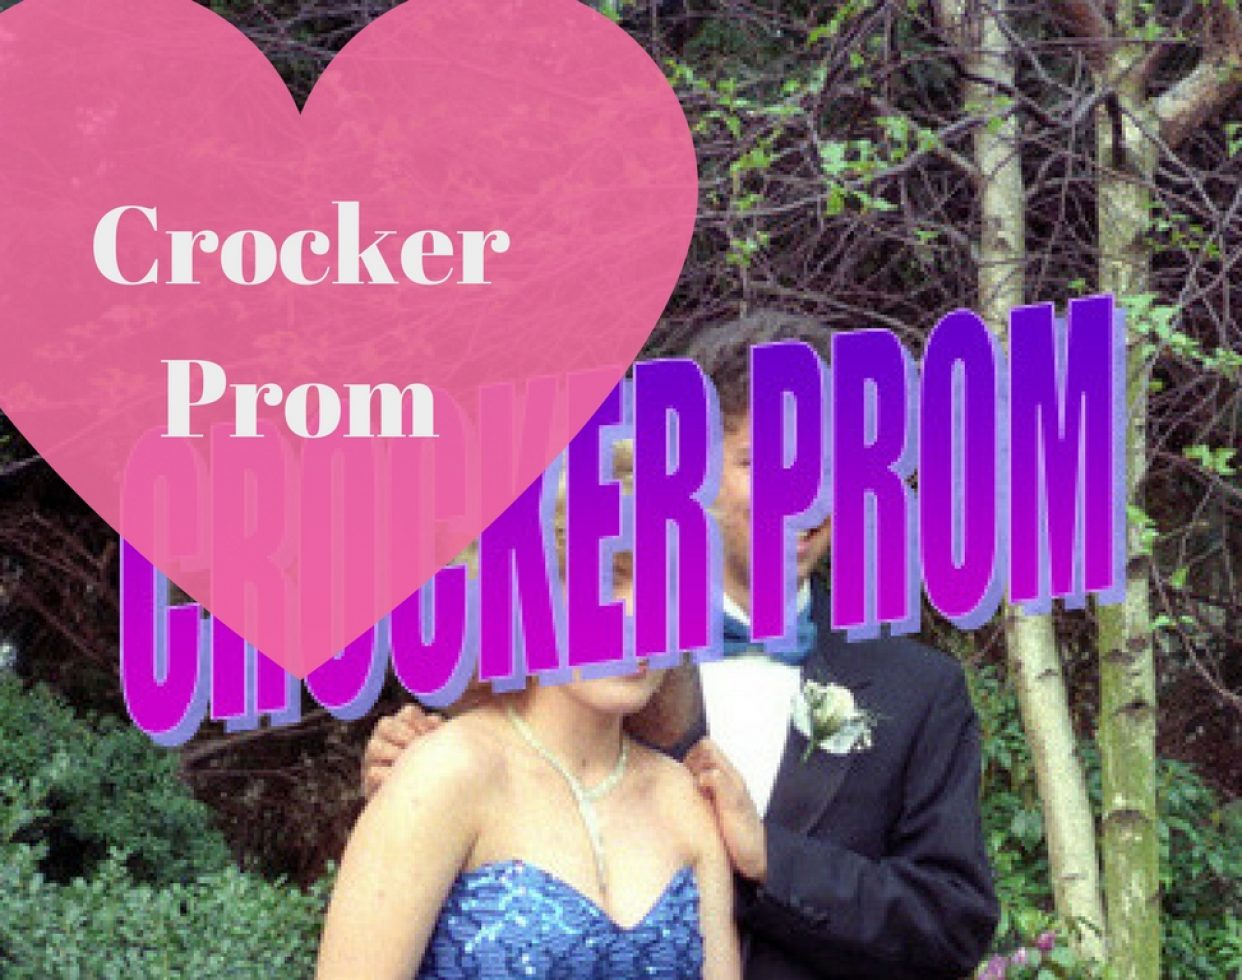 If you have ever wanted to re-do your high school prom, now is your chance. The Crocker Art Museum will host a 90s-themed prom night on February 11 from 8 p.m. to midnight. Register online by February 9 for tickets at $65 each, with a special pricing of $120 for couples. Tickets can also be bought at the door for an additional $10.  (Photo: Joe Shlabotnik // Flickr)